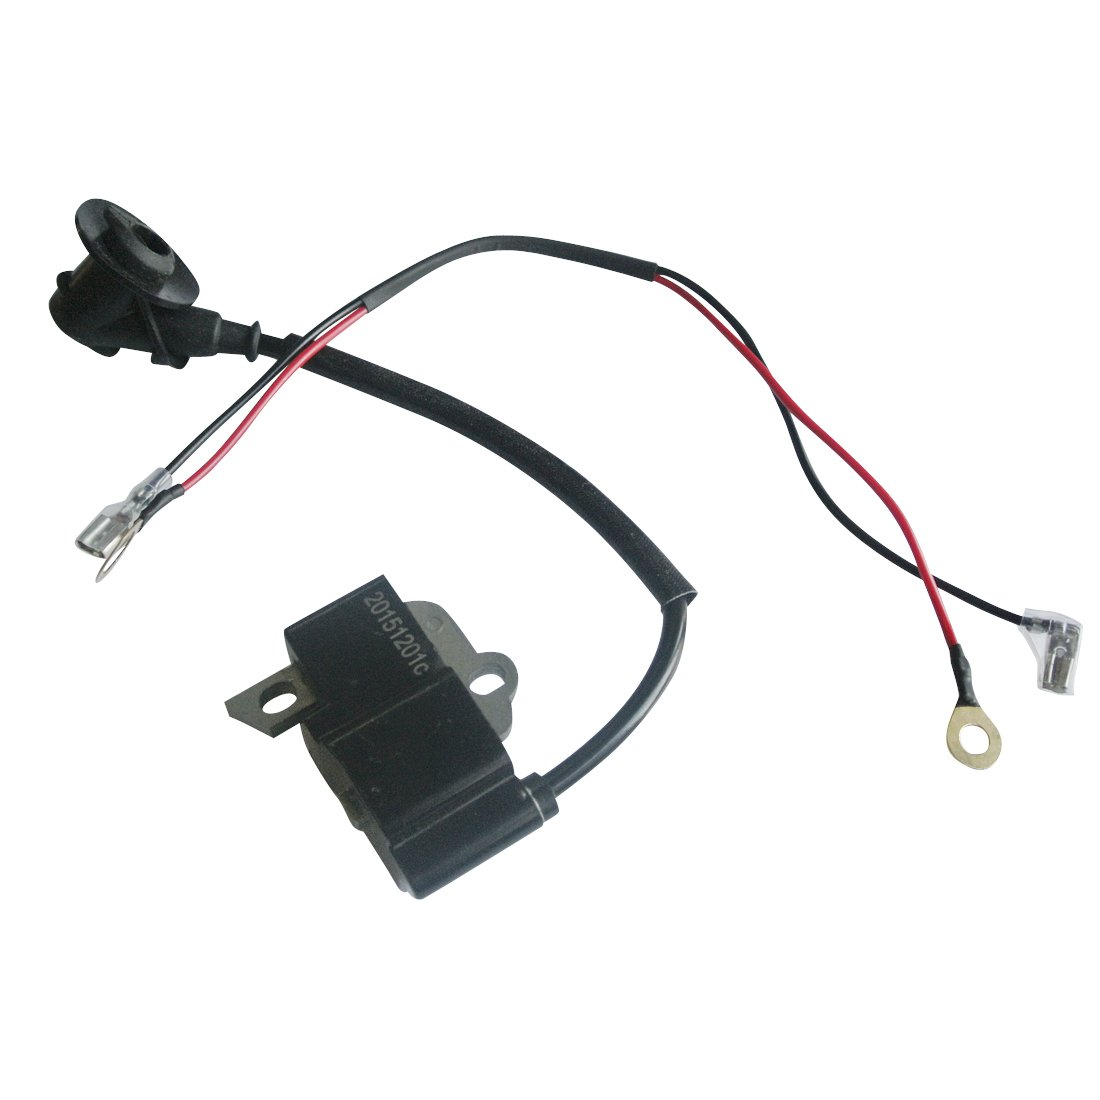 JL JIANGLI LEGEND Sthus Ignition Coil Module /& Wire Fits STIHL TS410 TS420 Cut Off Saws Spare Part